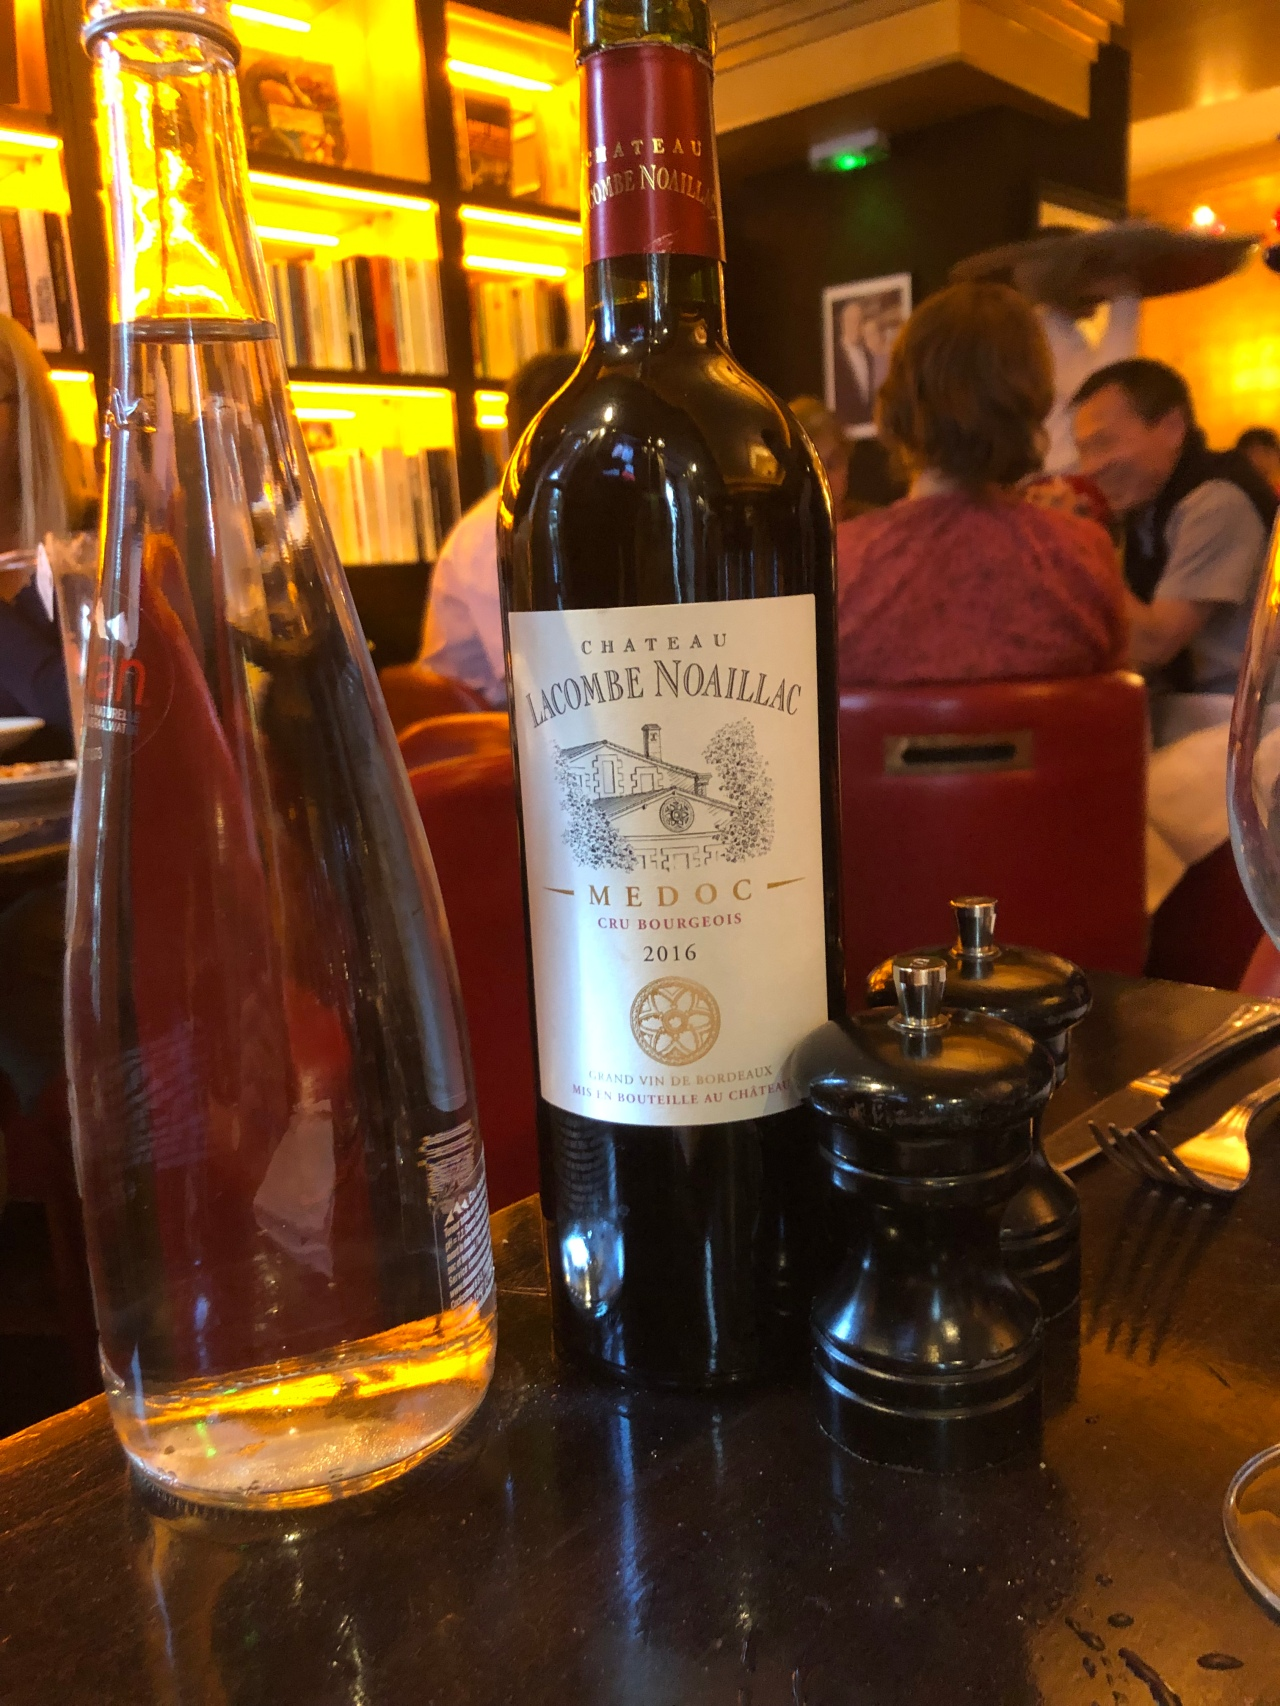 The Red Wine from Bordeaux at Les Editeurs Paris